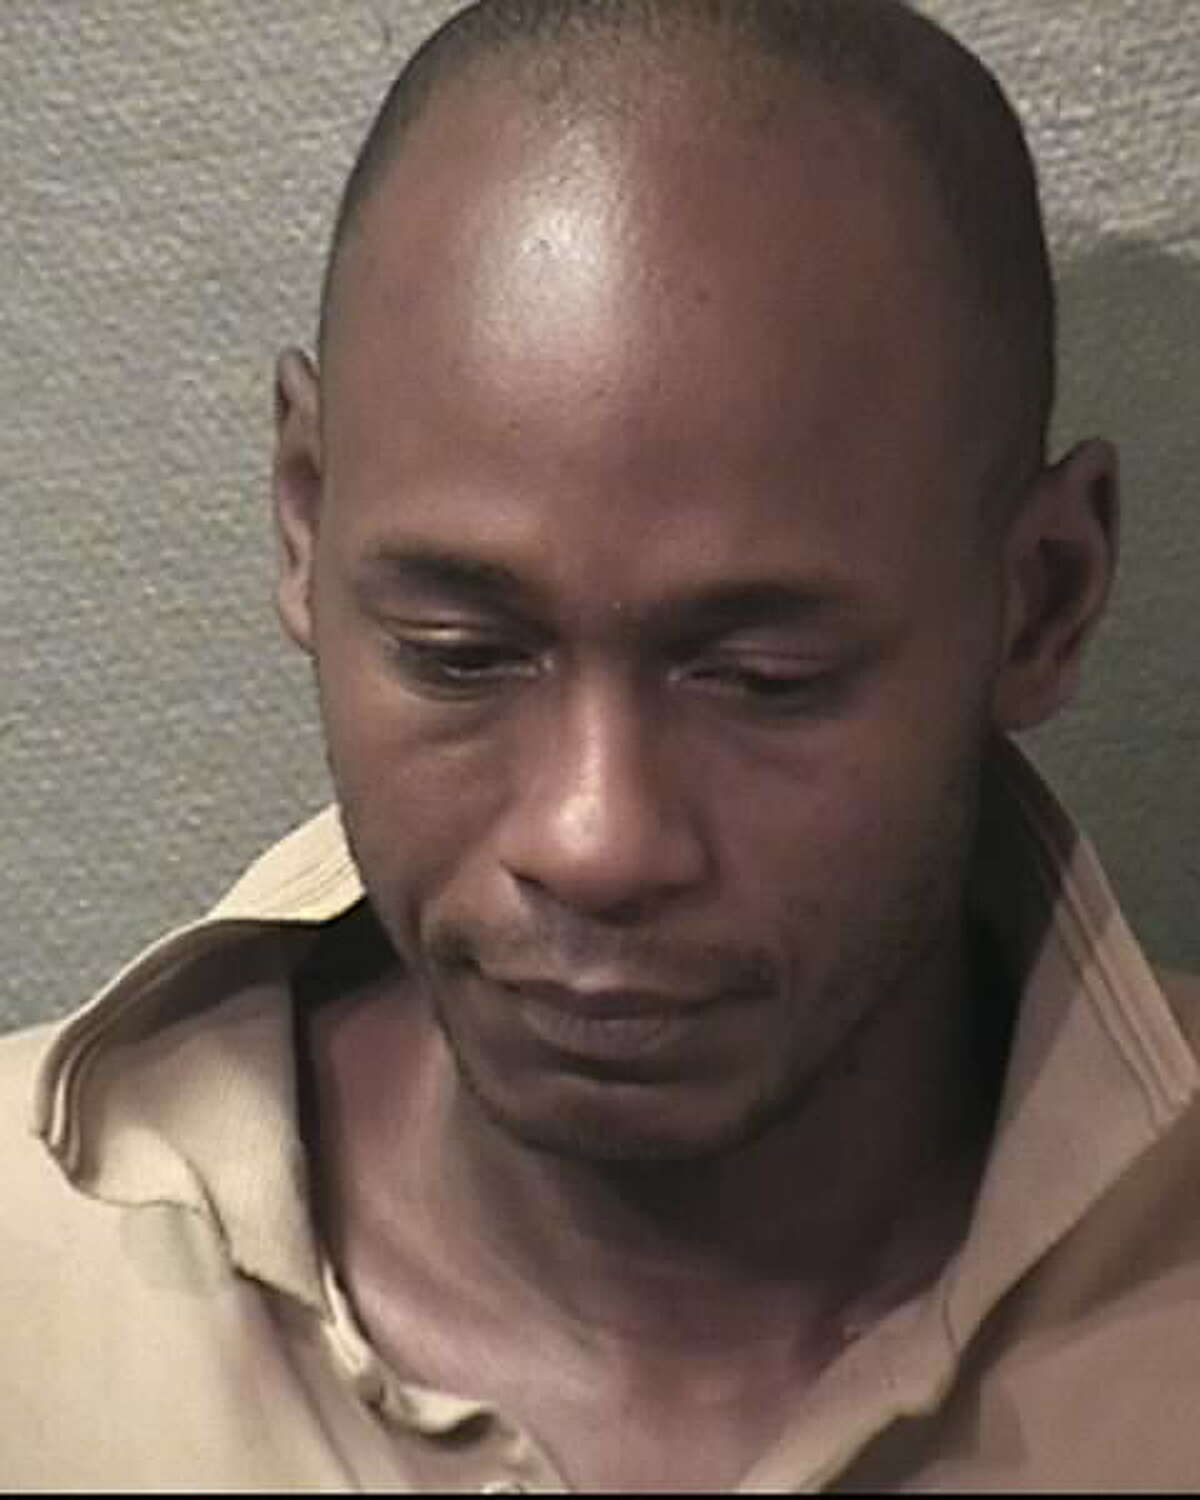 Cavalas Prater, 34, is charged with capital murder in the death of Su-Jung Teng about 5:30 p.m. April 29 in the 7800 block of Hiawatha, according to the Houston Police Department.